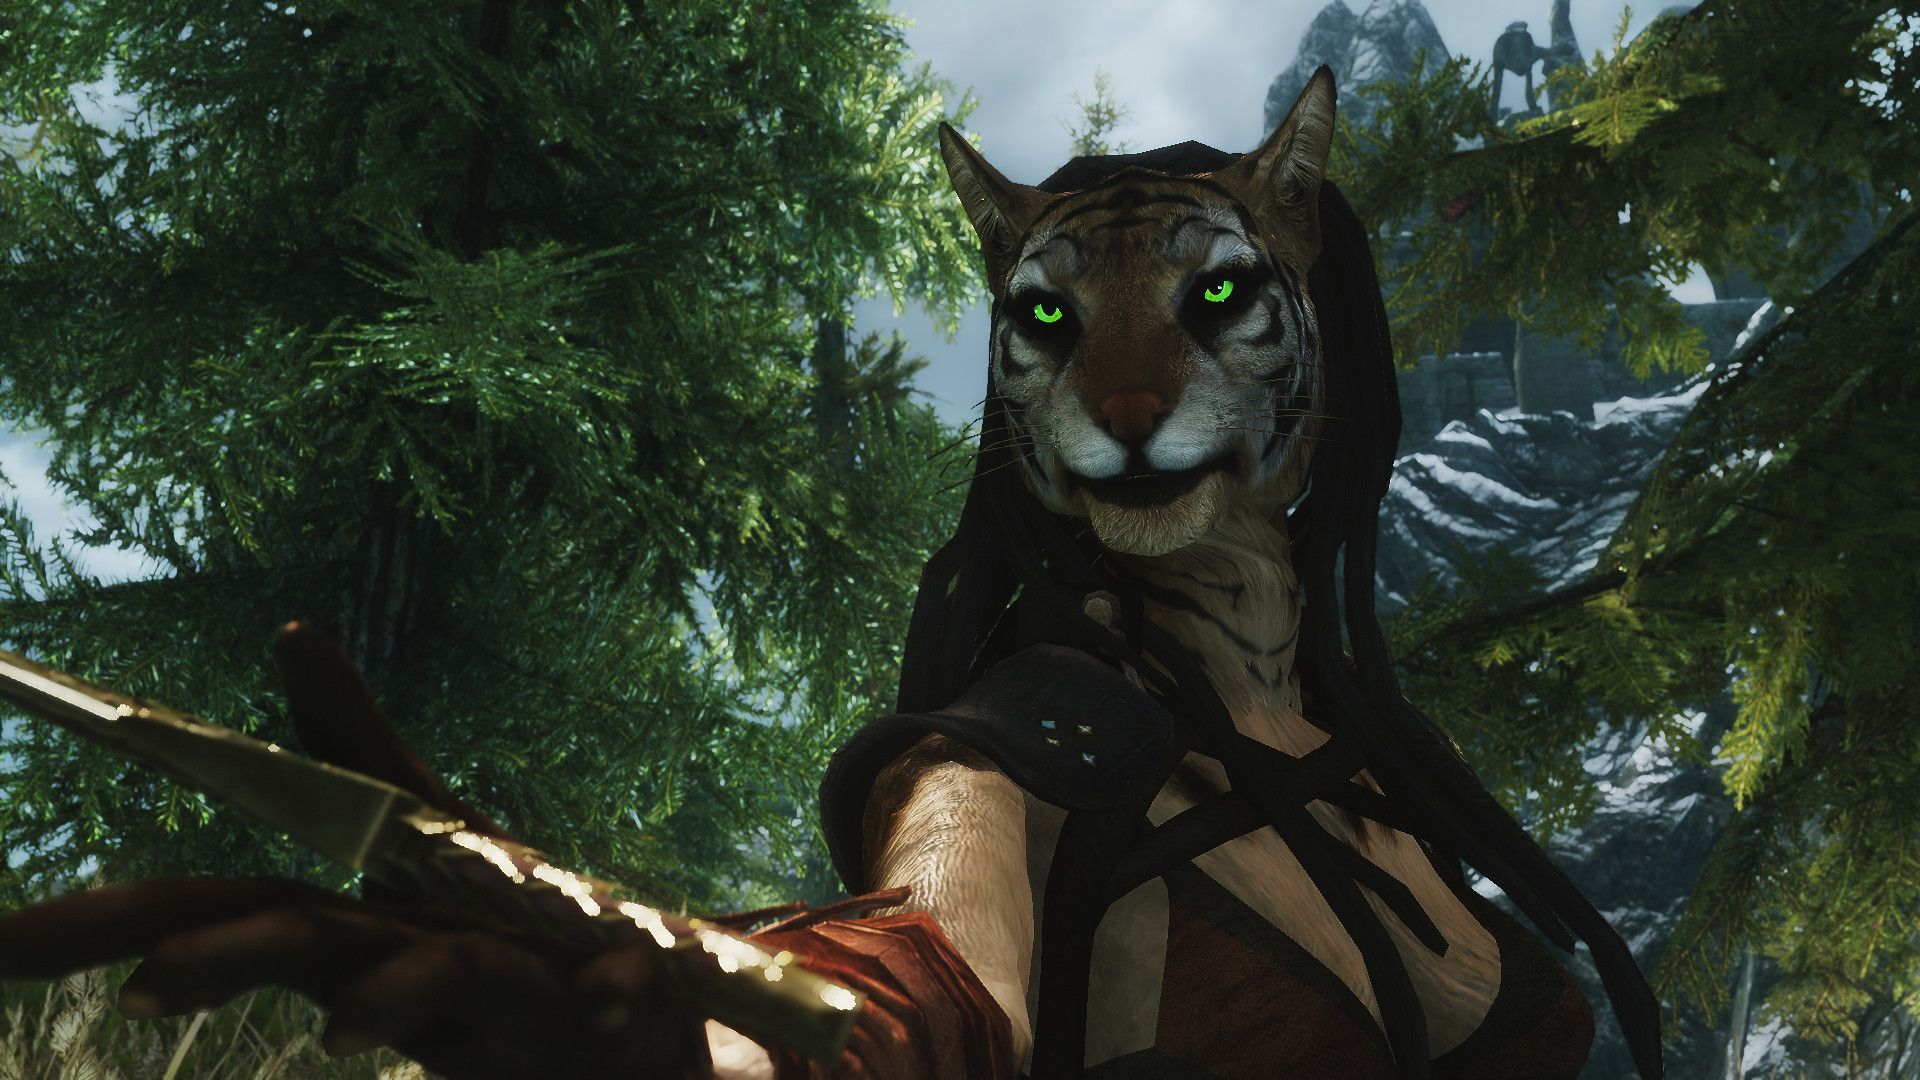 skyrim khajiit | Skyrim Nexus - mods and community | Games/Manga